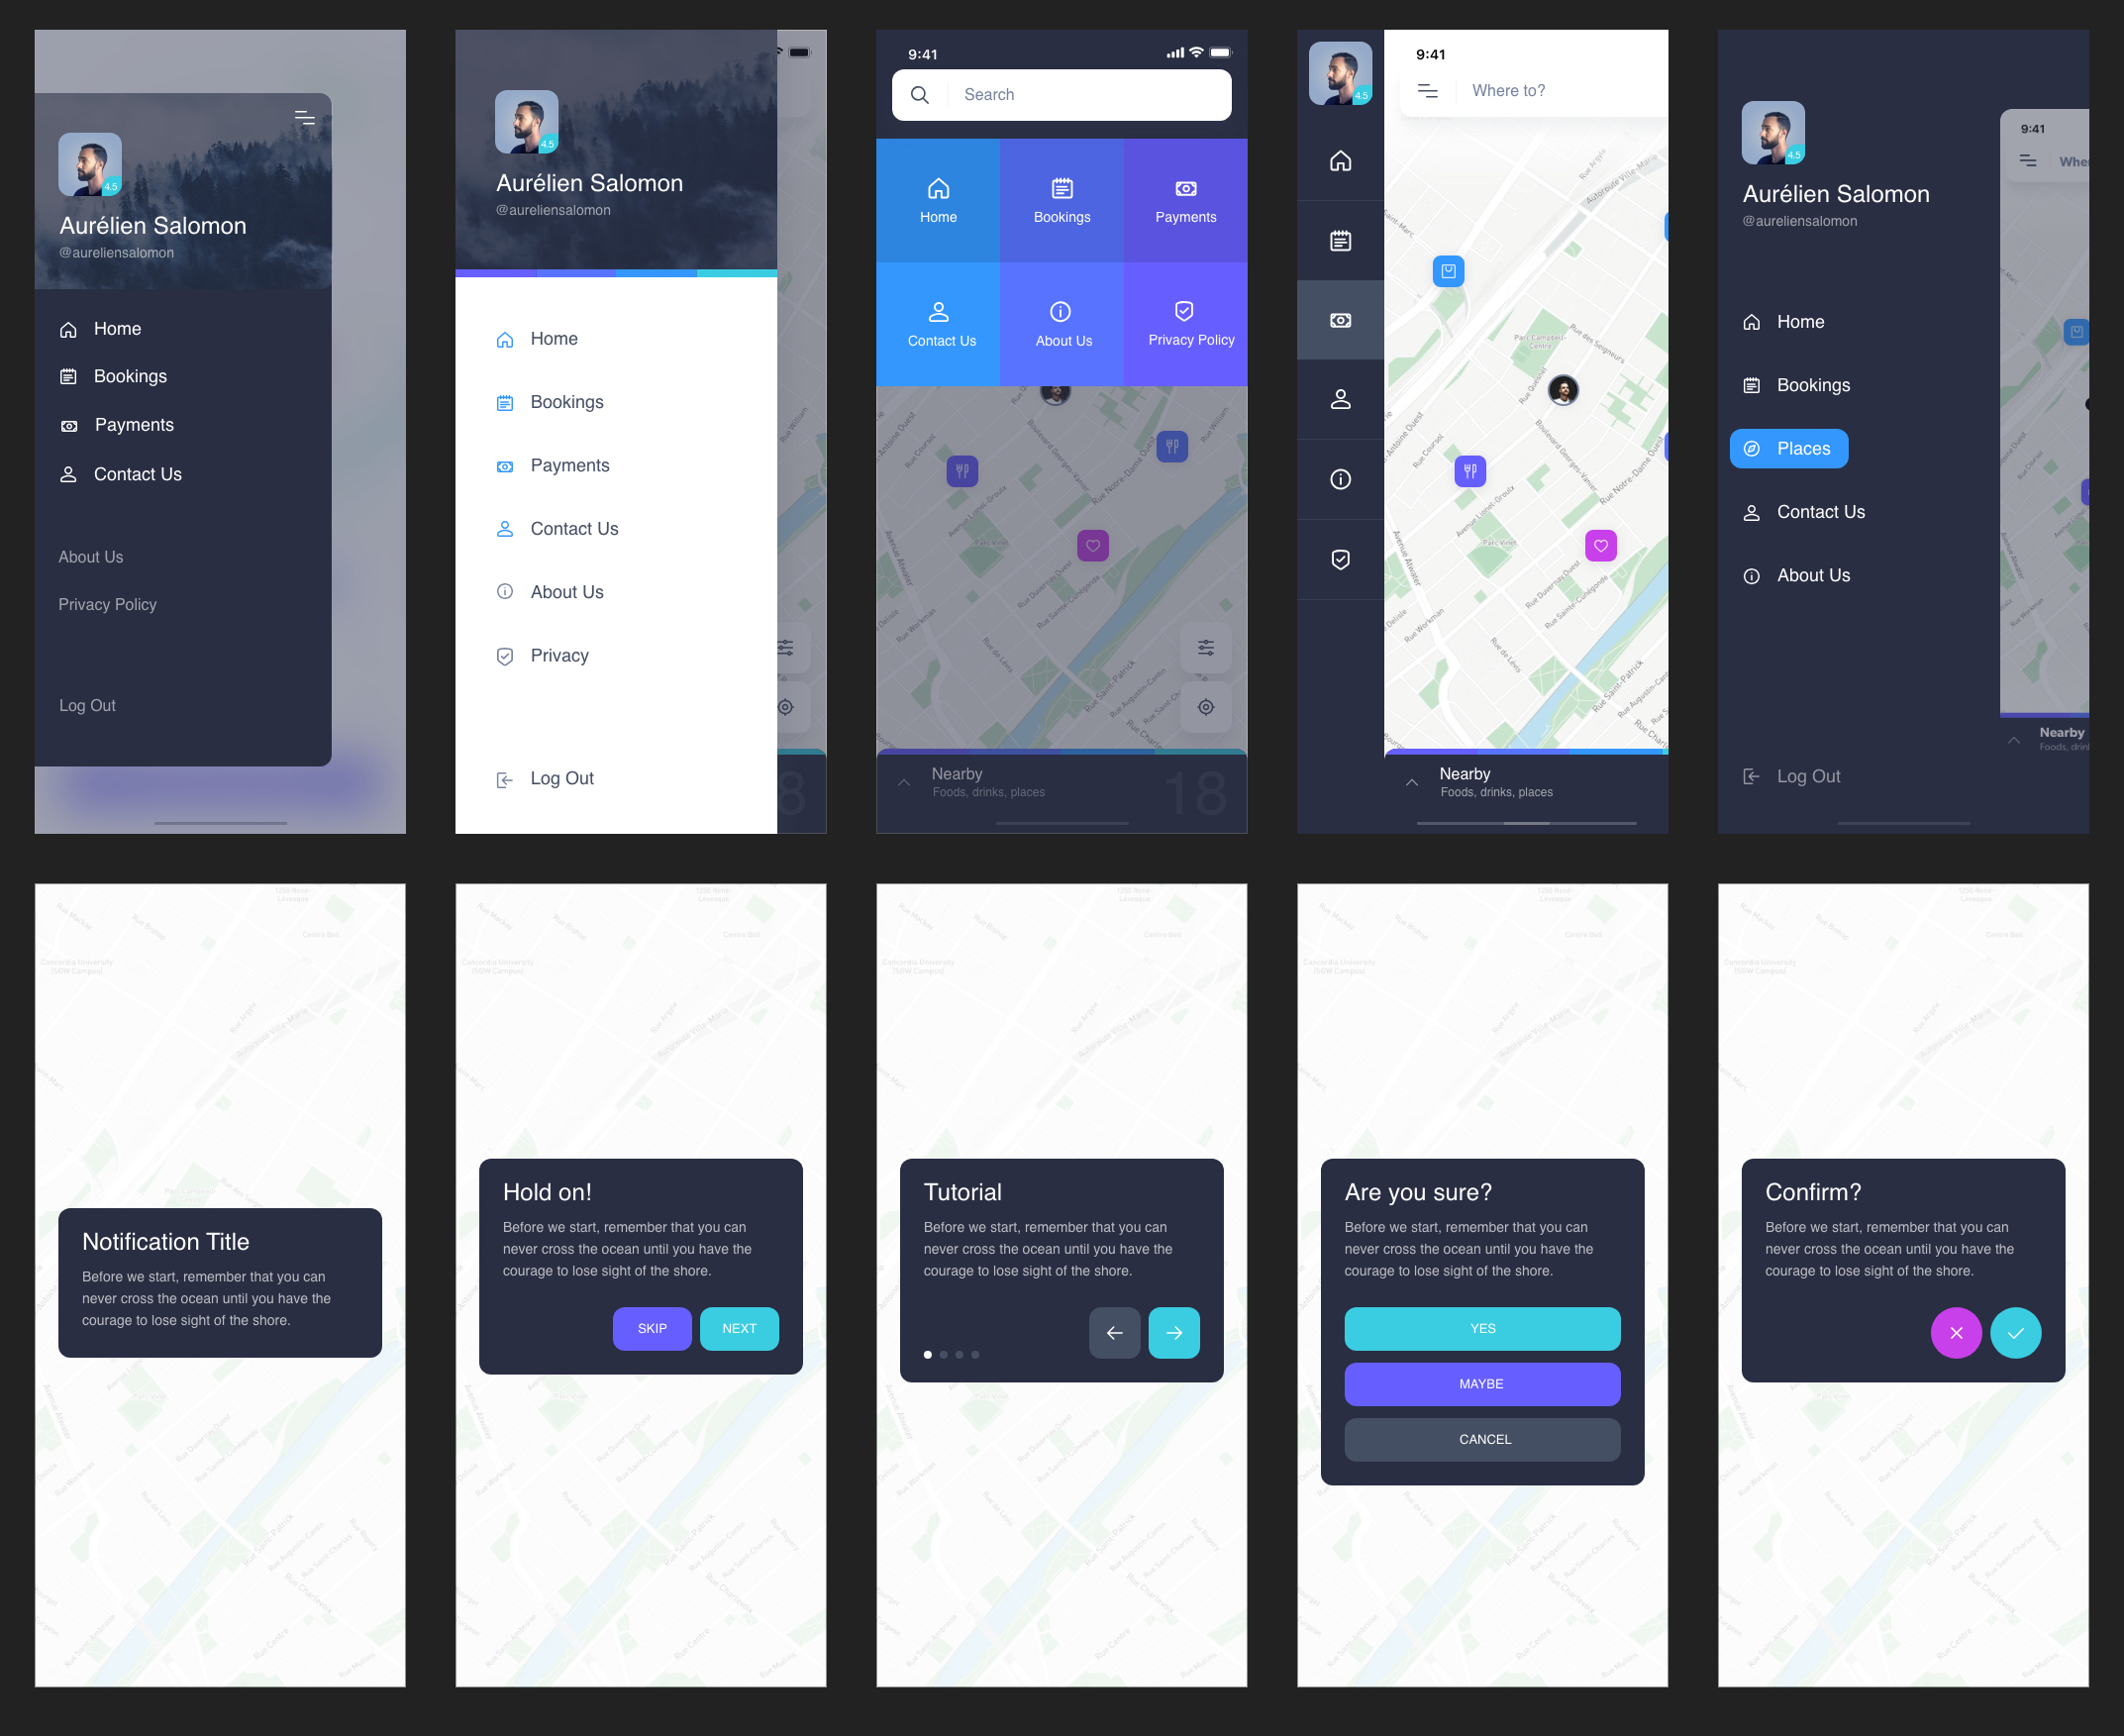 Navigo UI Kit for Adobe XD - Navigo is a free iOS UI Kit made for Adobe XD. It includes more than 60 screens organized in 6 categories and designed with a modern and colorful style.